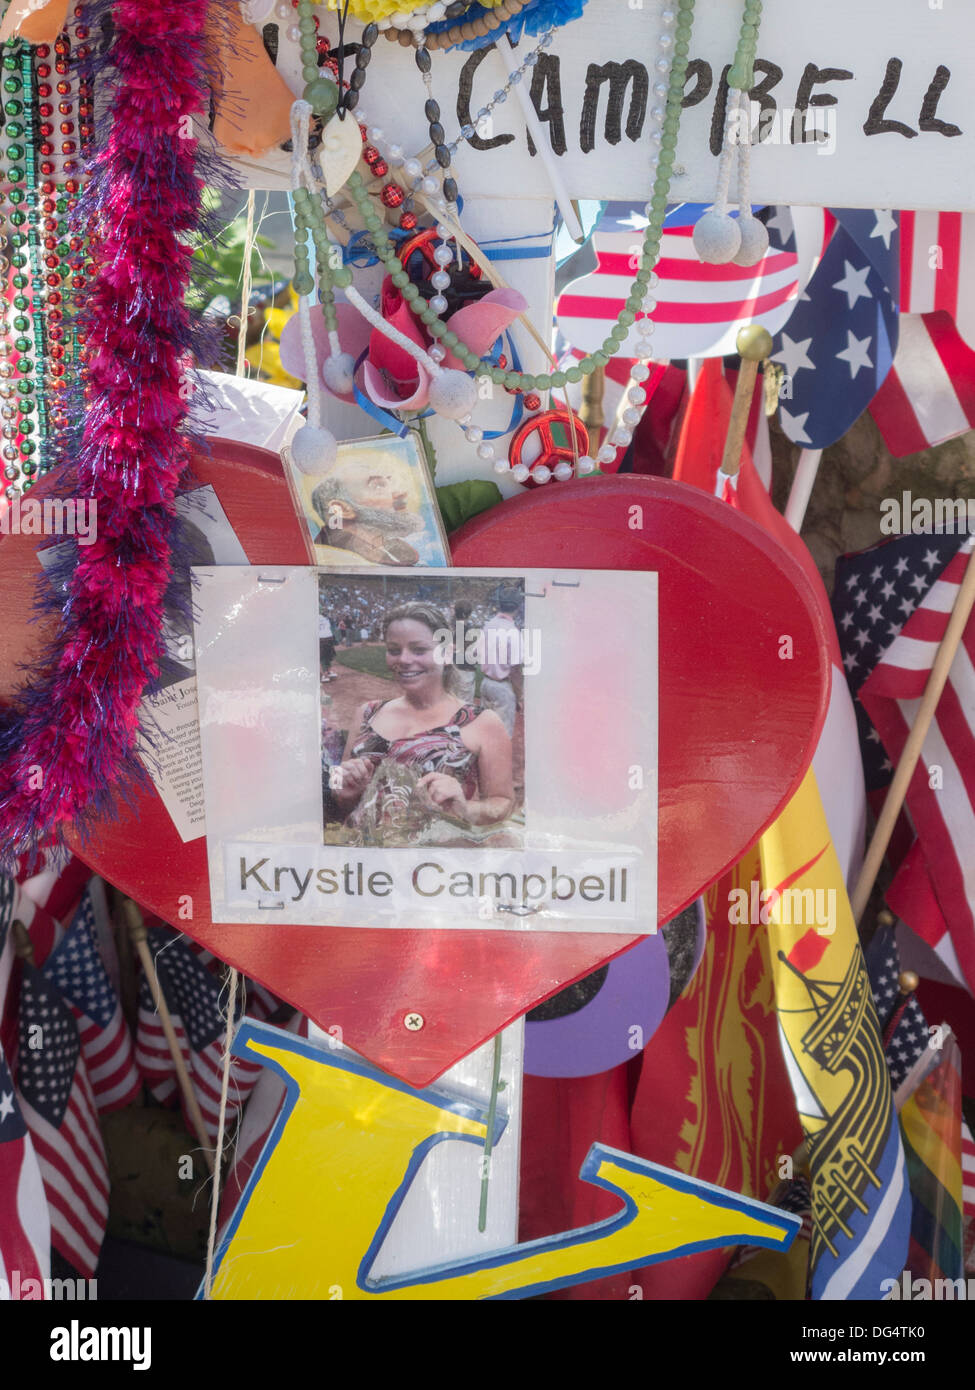 unofficial tribute to the Boston Marathon Bombing victim Krystle Campbell Stock Photo